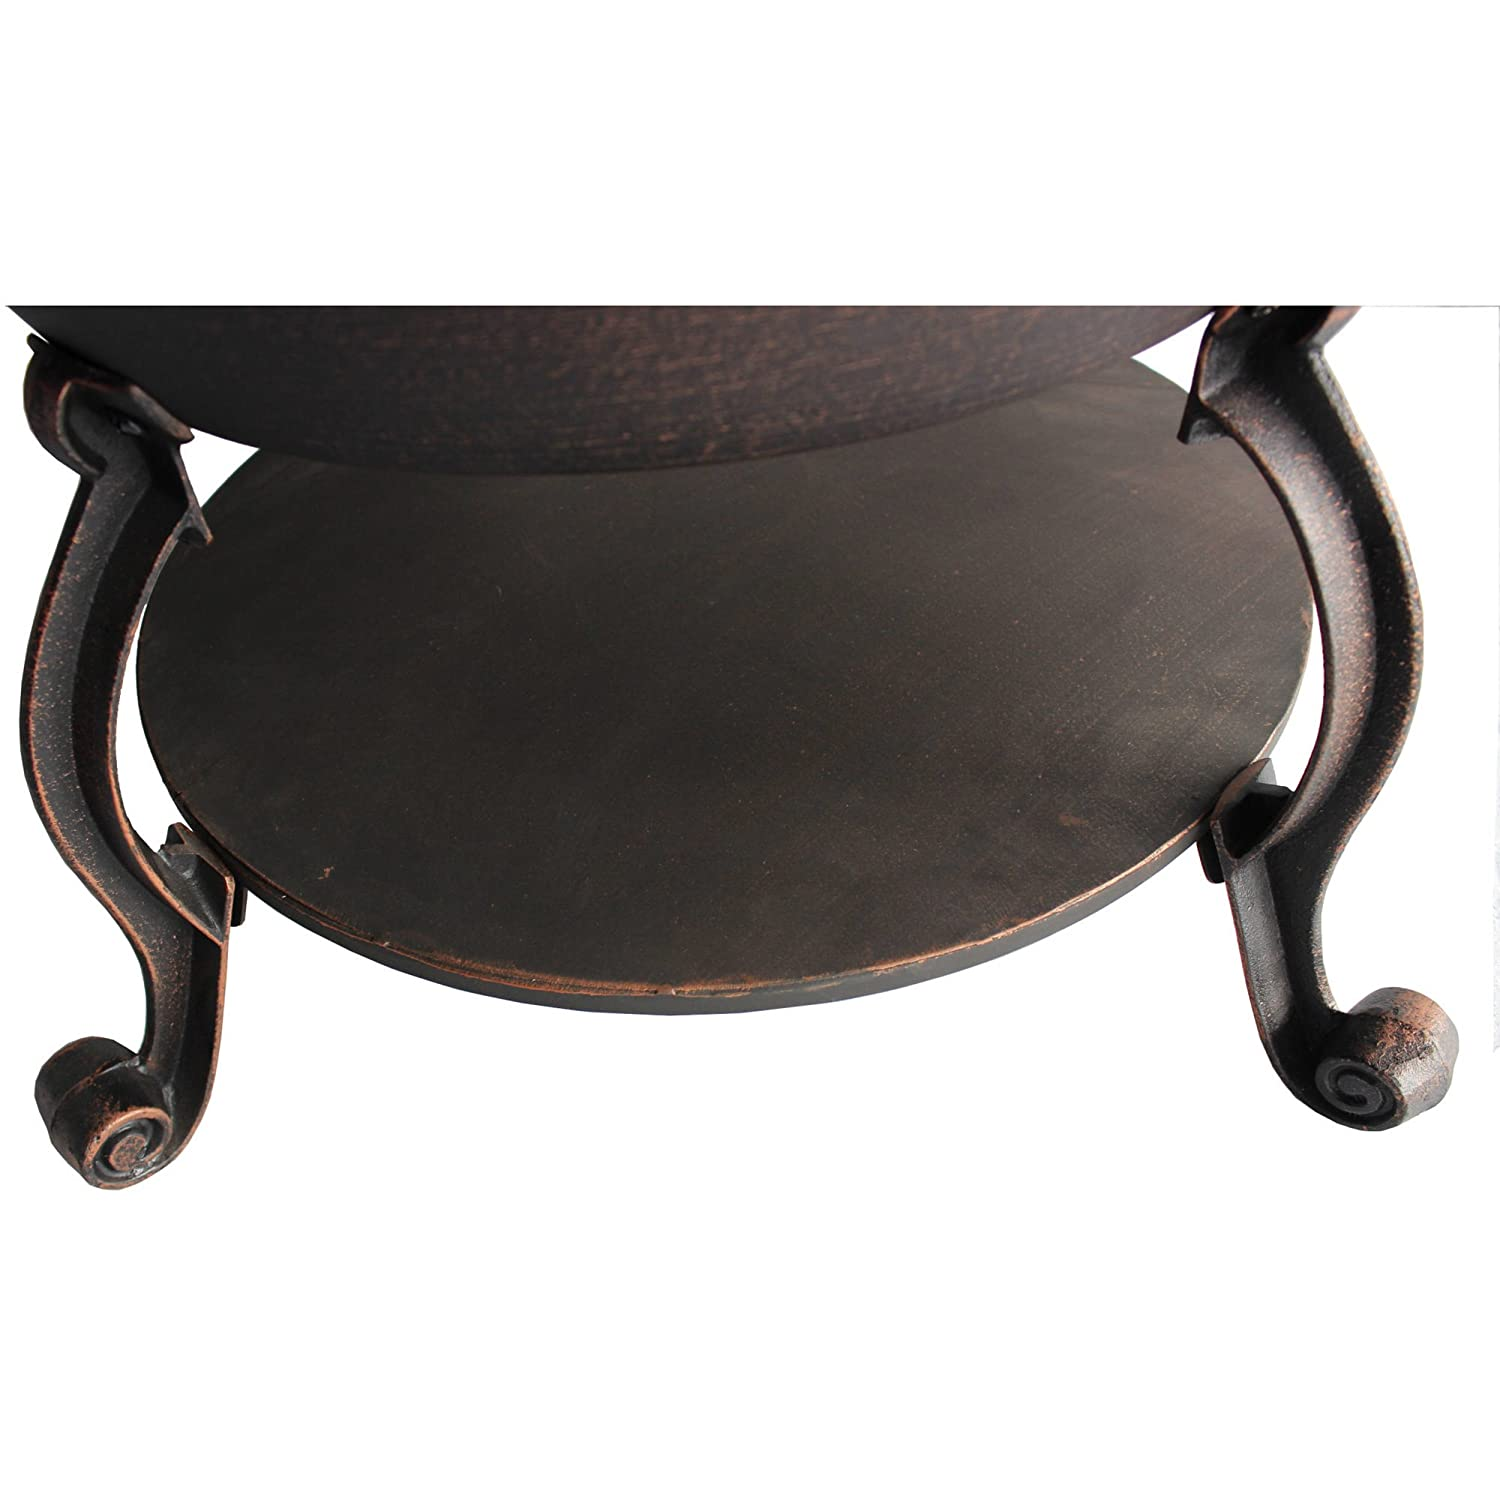 Amazon.com : Durable Cast Iron Construction Big size ...